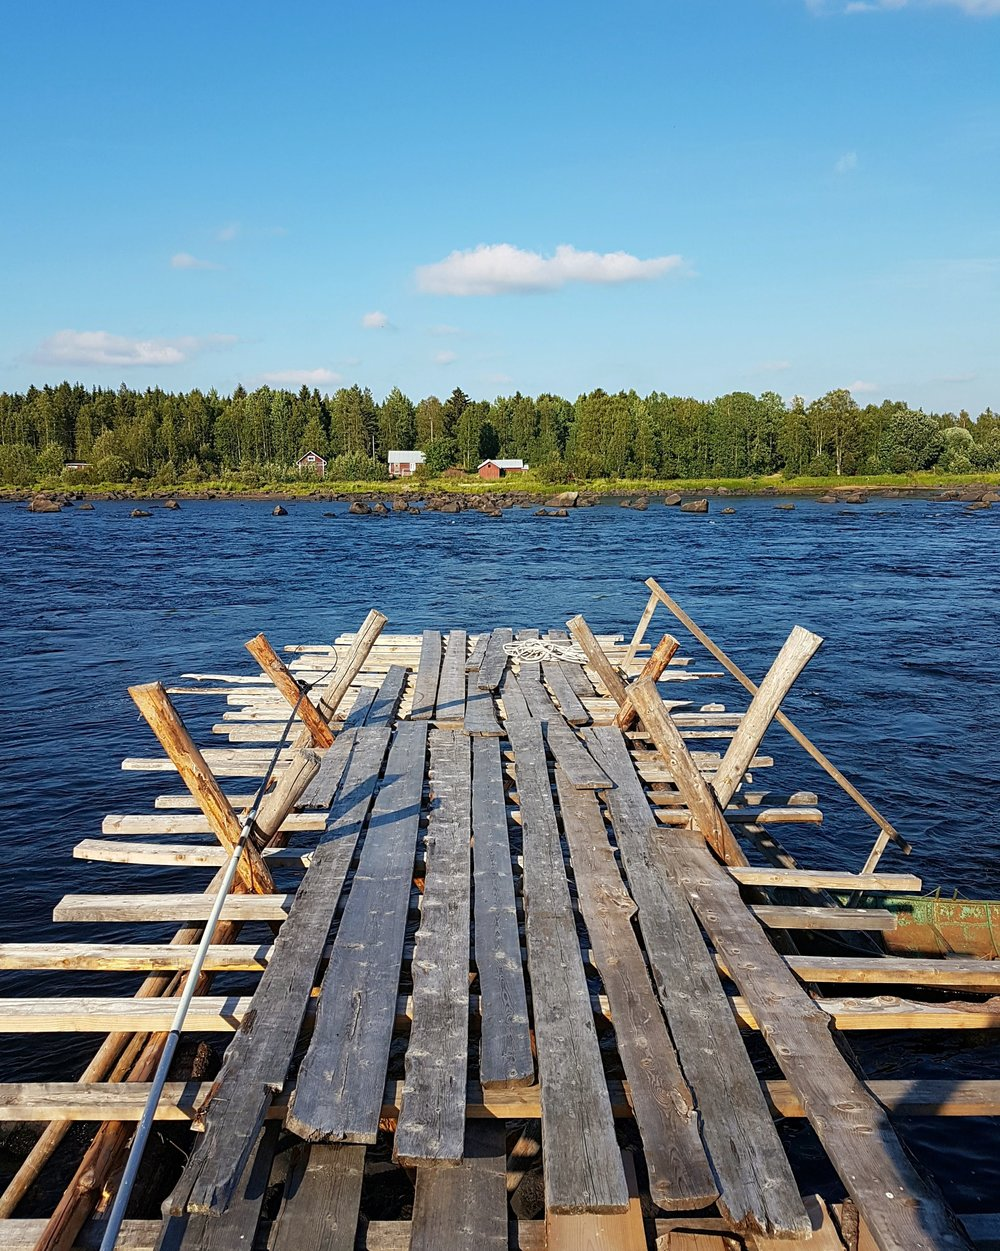 Each year the local fishermen erect the wooden pier in order to use it as a platform to fish from. These platforms usually stand in place from summer through to autumn, before the cold period sets in and they are dismatled again.  The materials may appear to be old and rickety, but their design withstands the flowing rapids and allows the locals to catch their fish.